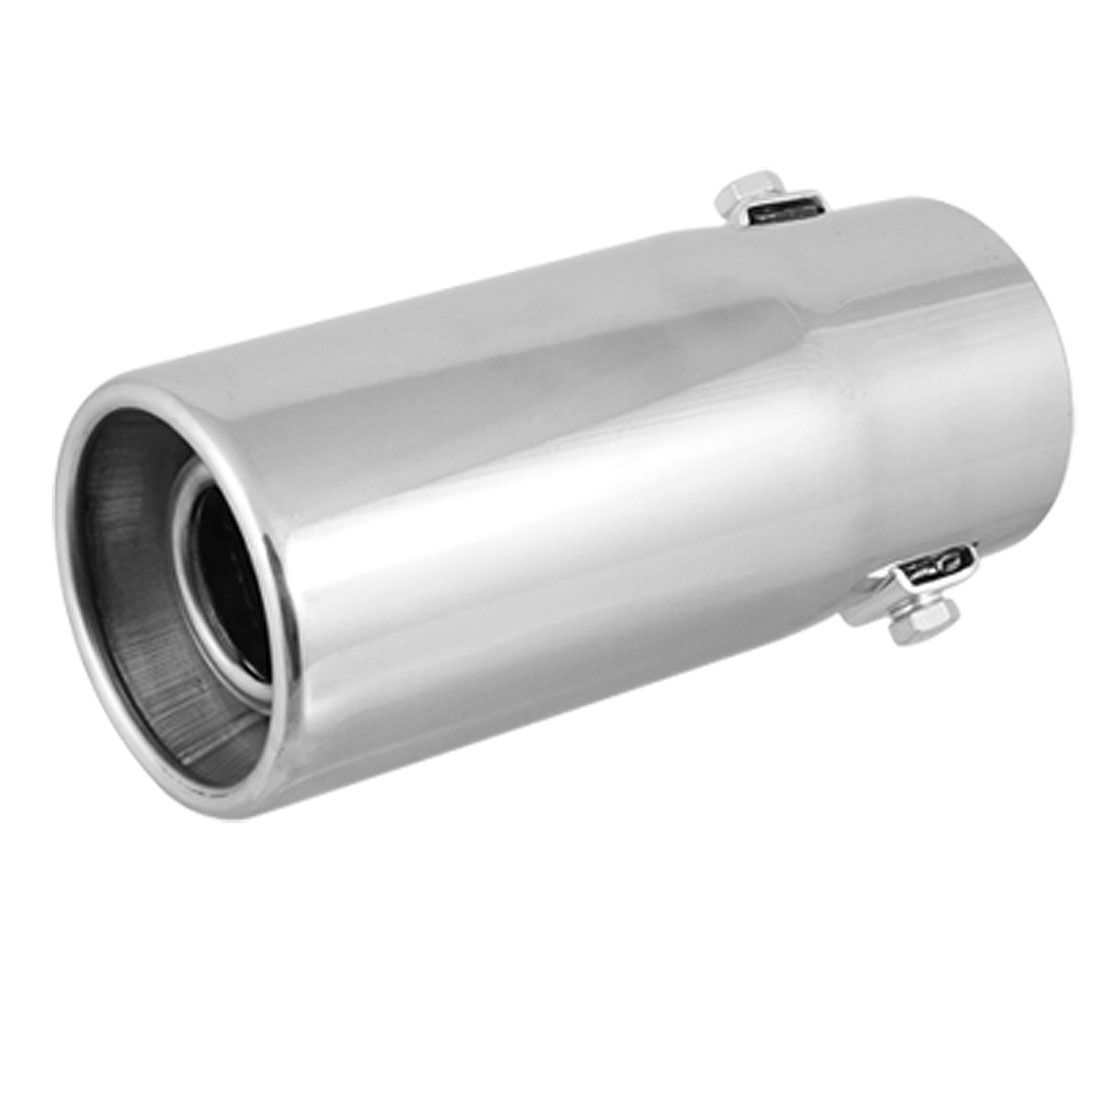 Stainless Steel Muffler Exhaust Extension Tail Gas Pipe for Vehicle